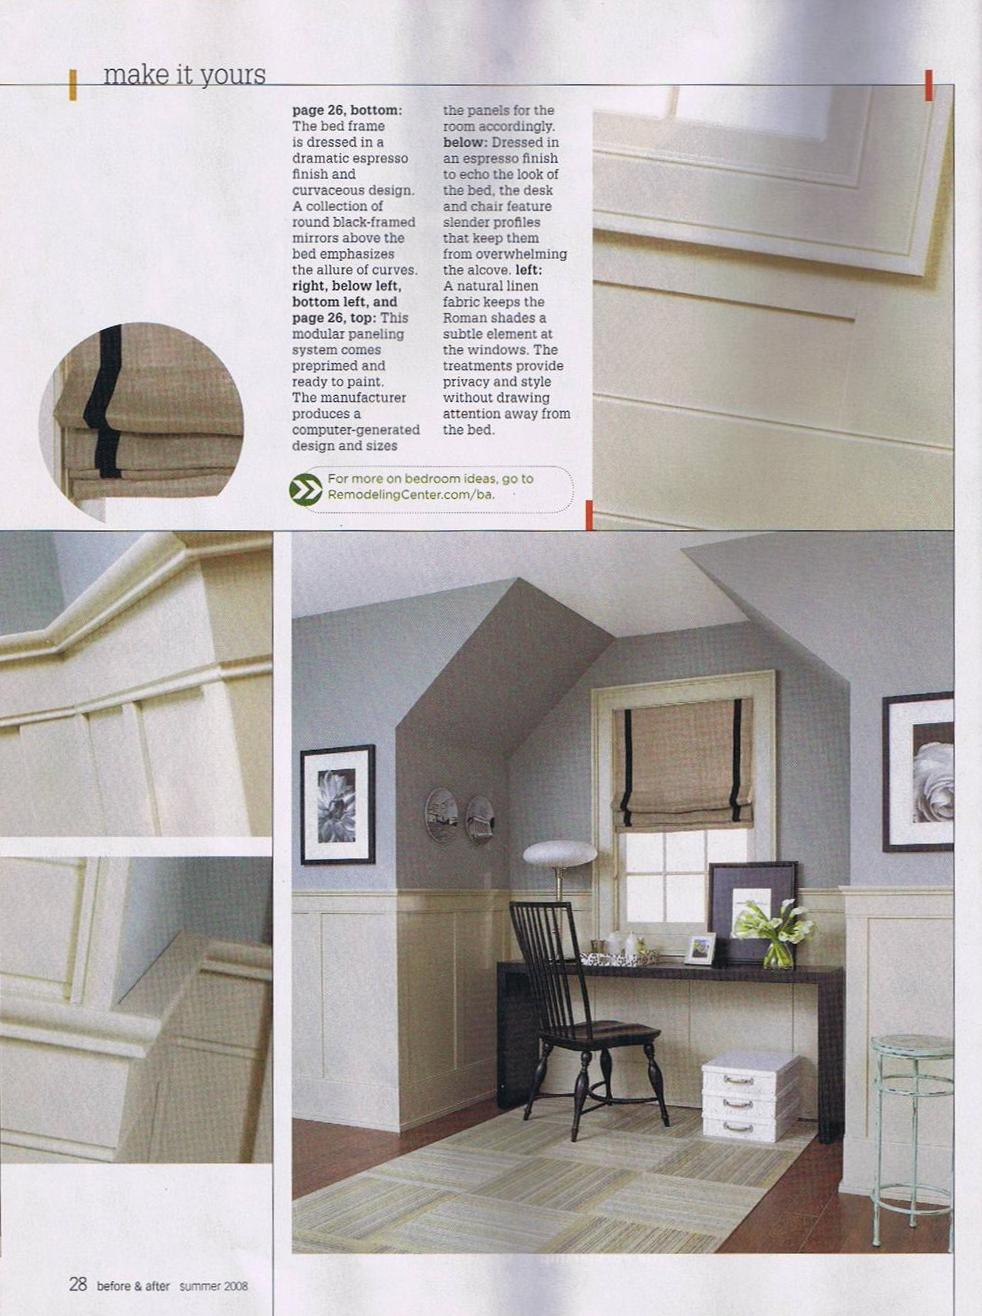 American Flat Panel Wainscot | Better Homes & Gardens 2